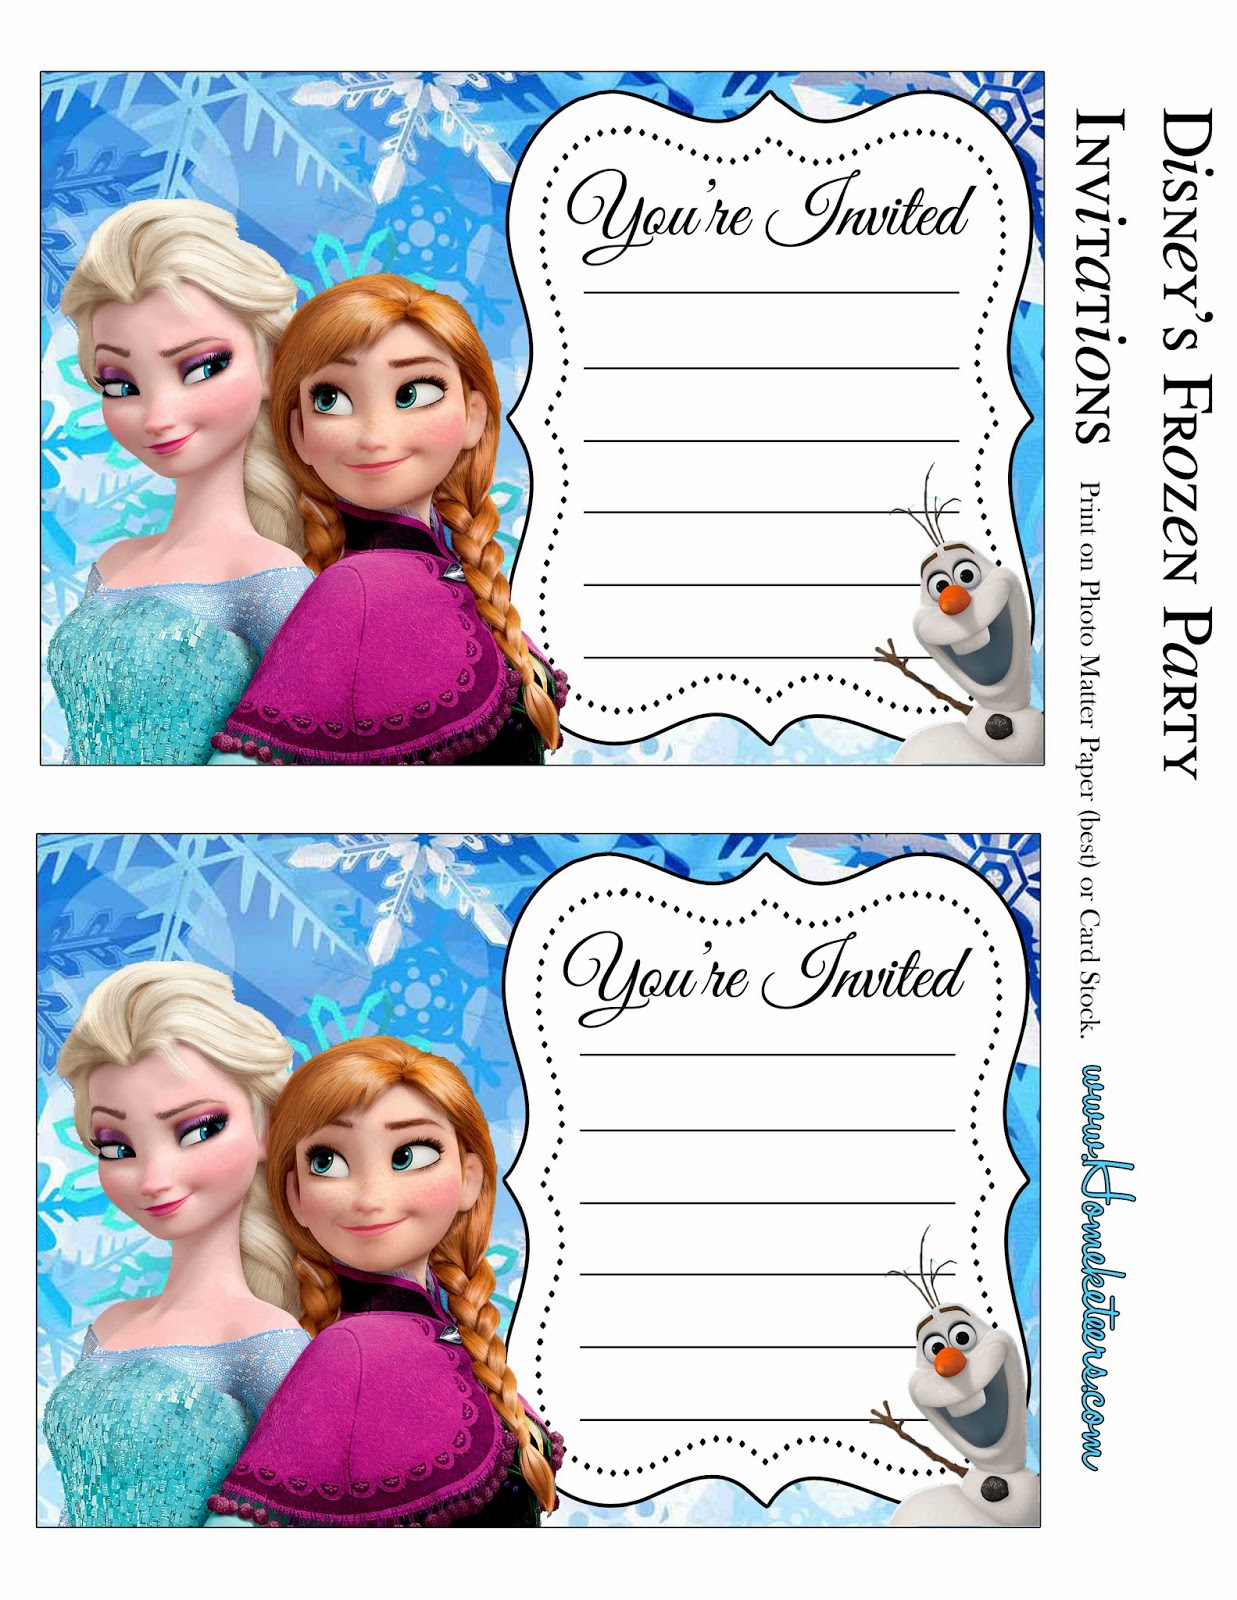 Frozen Party Free Printable Invitations Oh My Fiesta In English